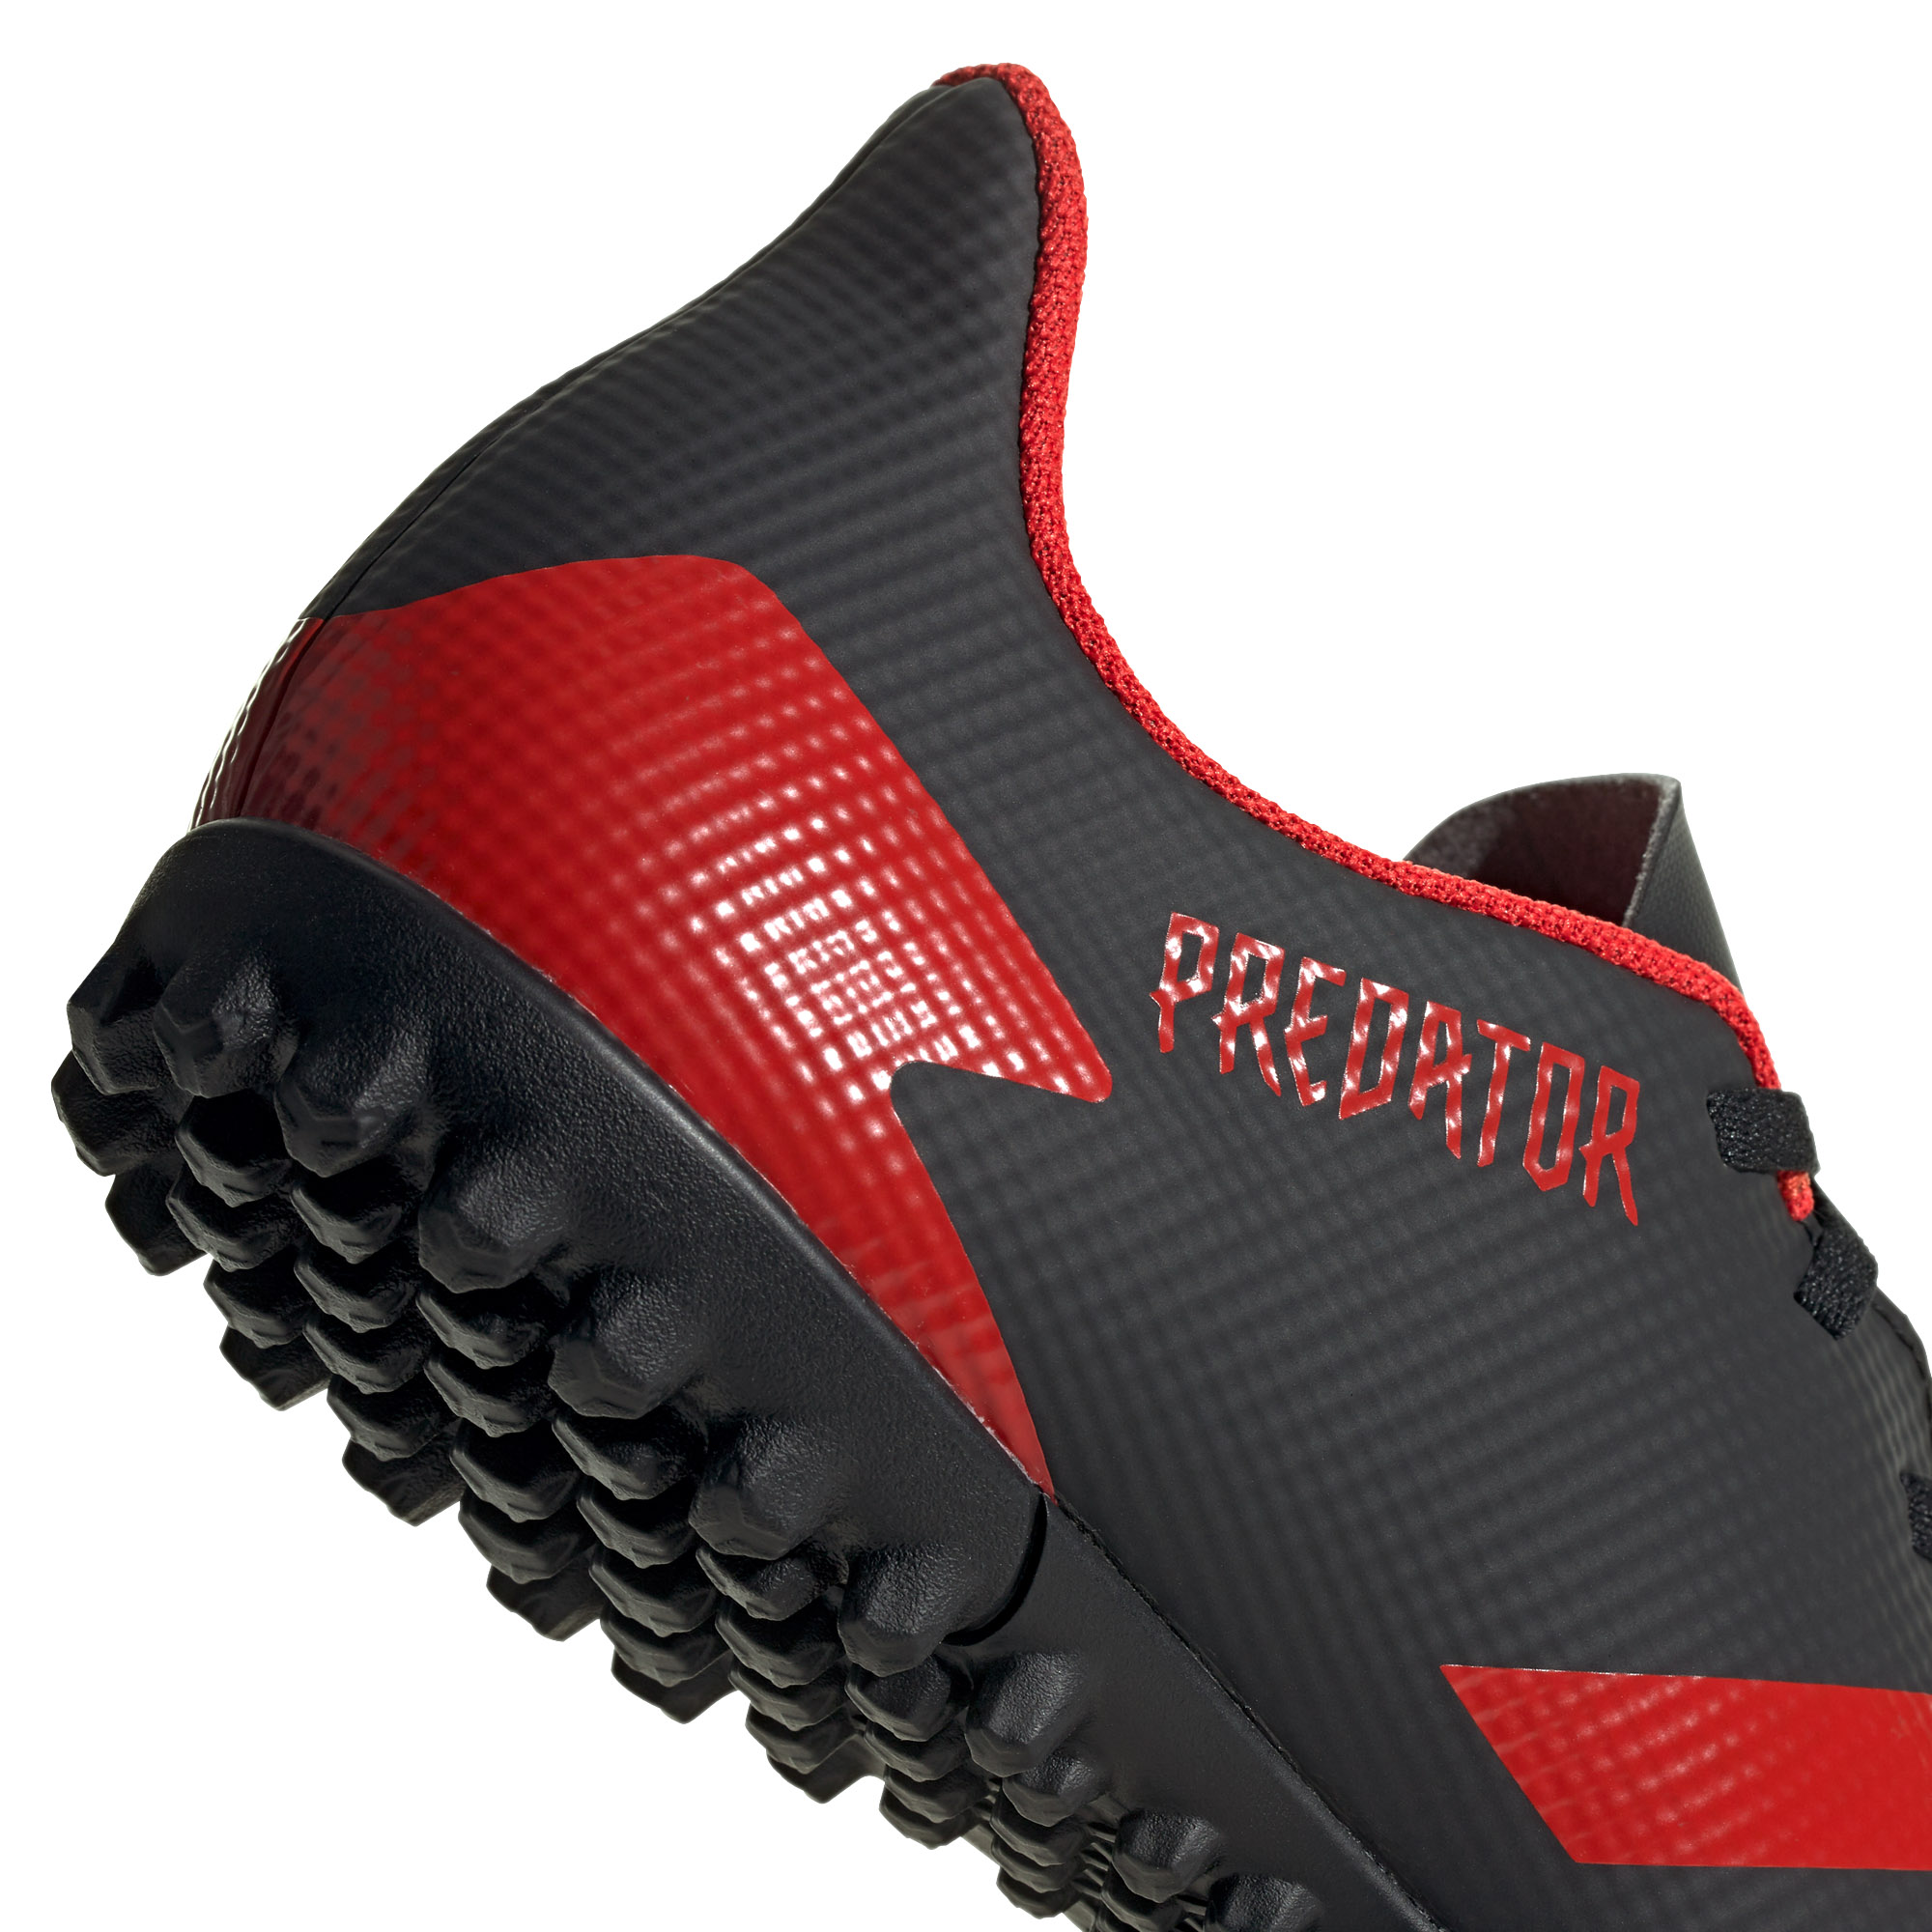 Adidas-Predator-20-4-TF-pour-Homme-Football-Turf-Basket-Chaussure-Noir-Rouge-mutantes miniature 10